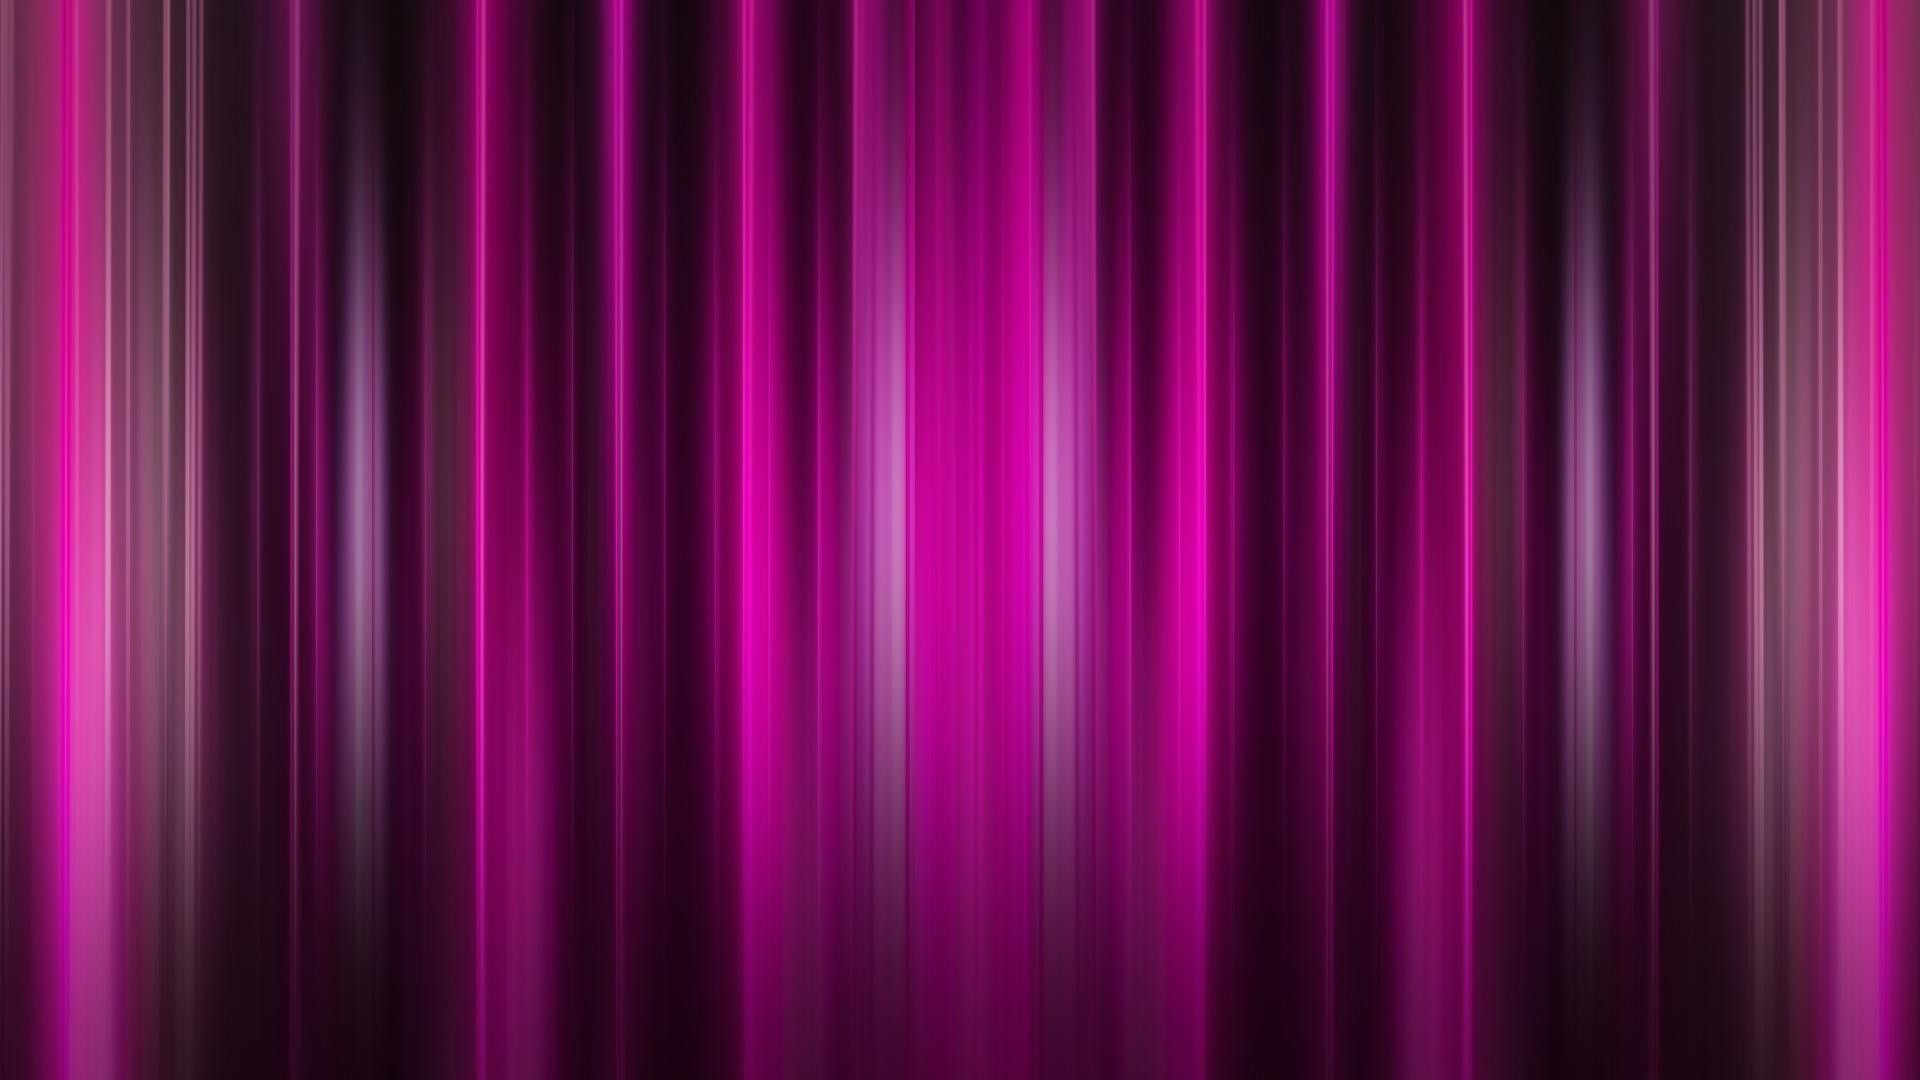 1920x1080 80+ Pink Abstract Wallpapers on WallpaperPlay